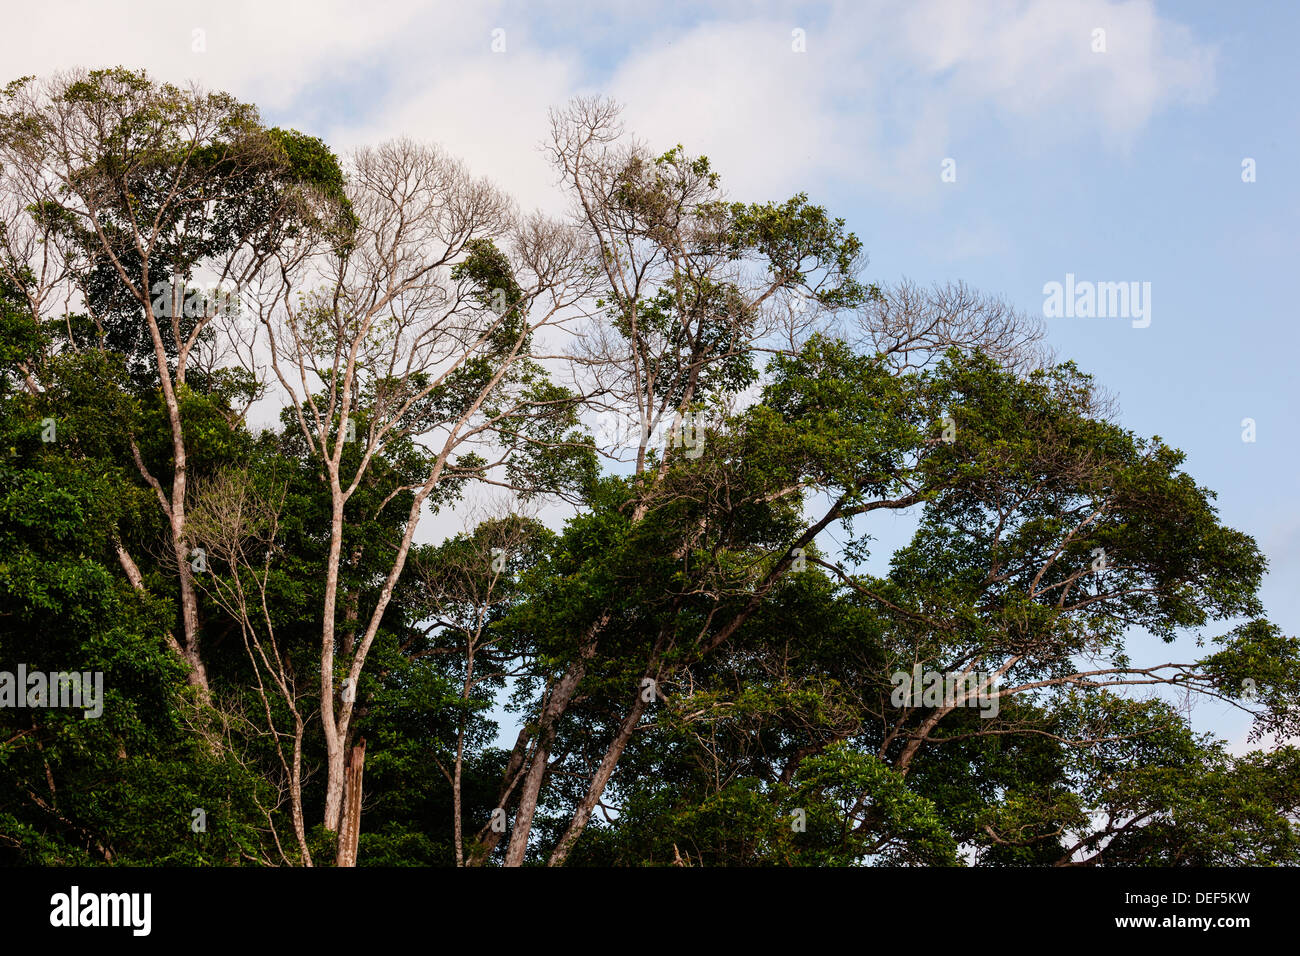 Africa, Cameroon, Kribi. View of trees. - Stock Image